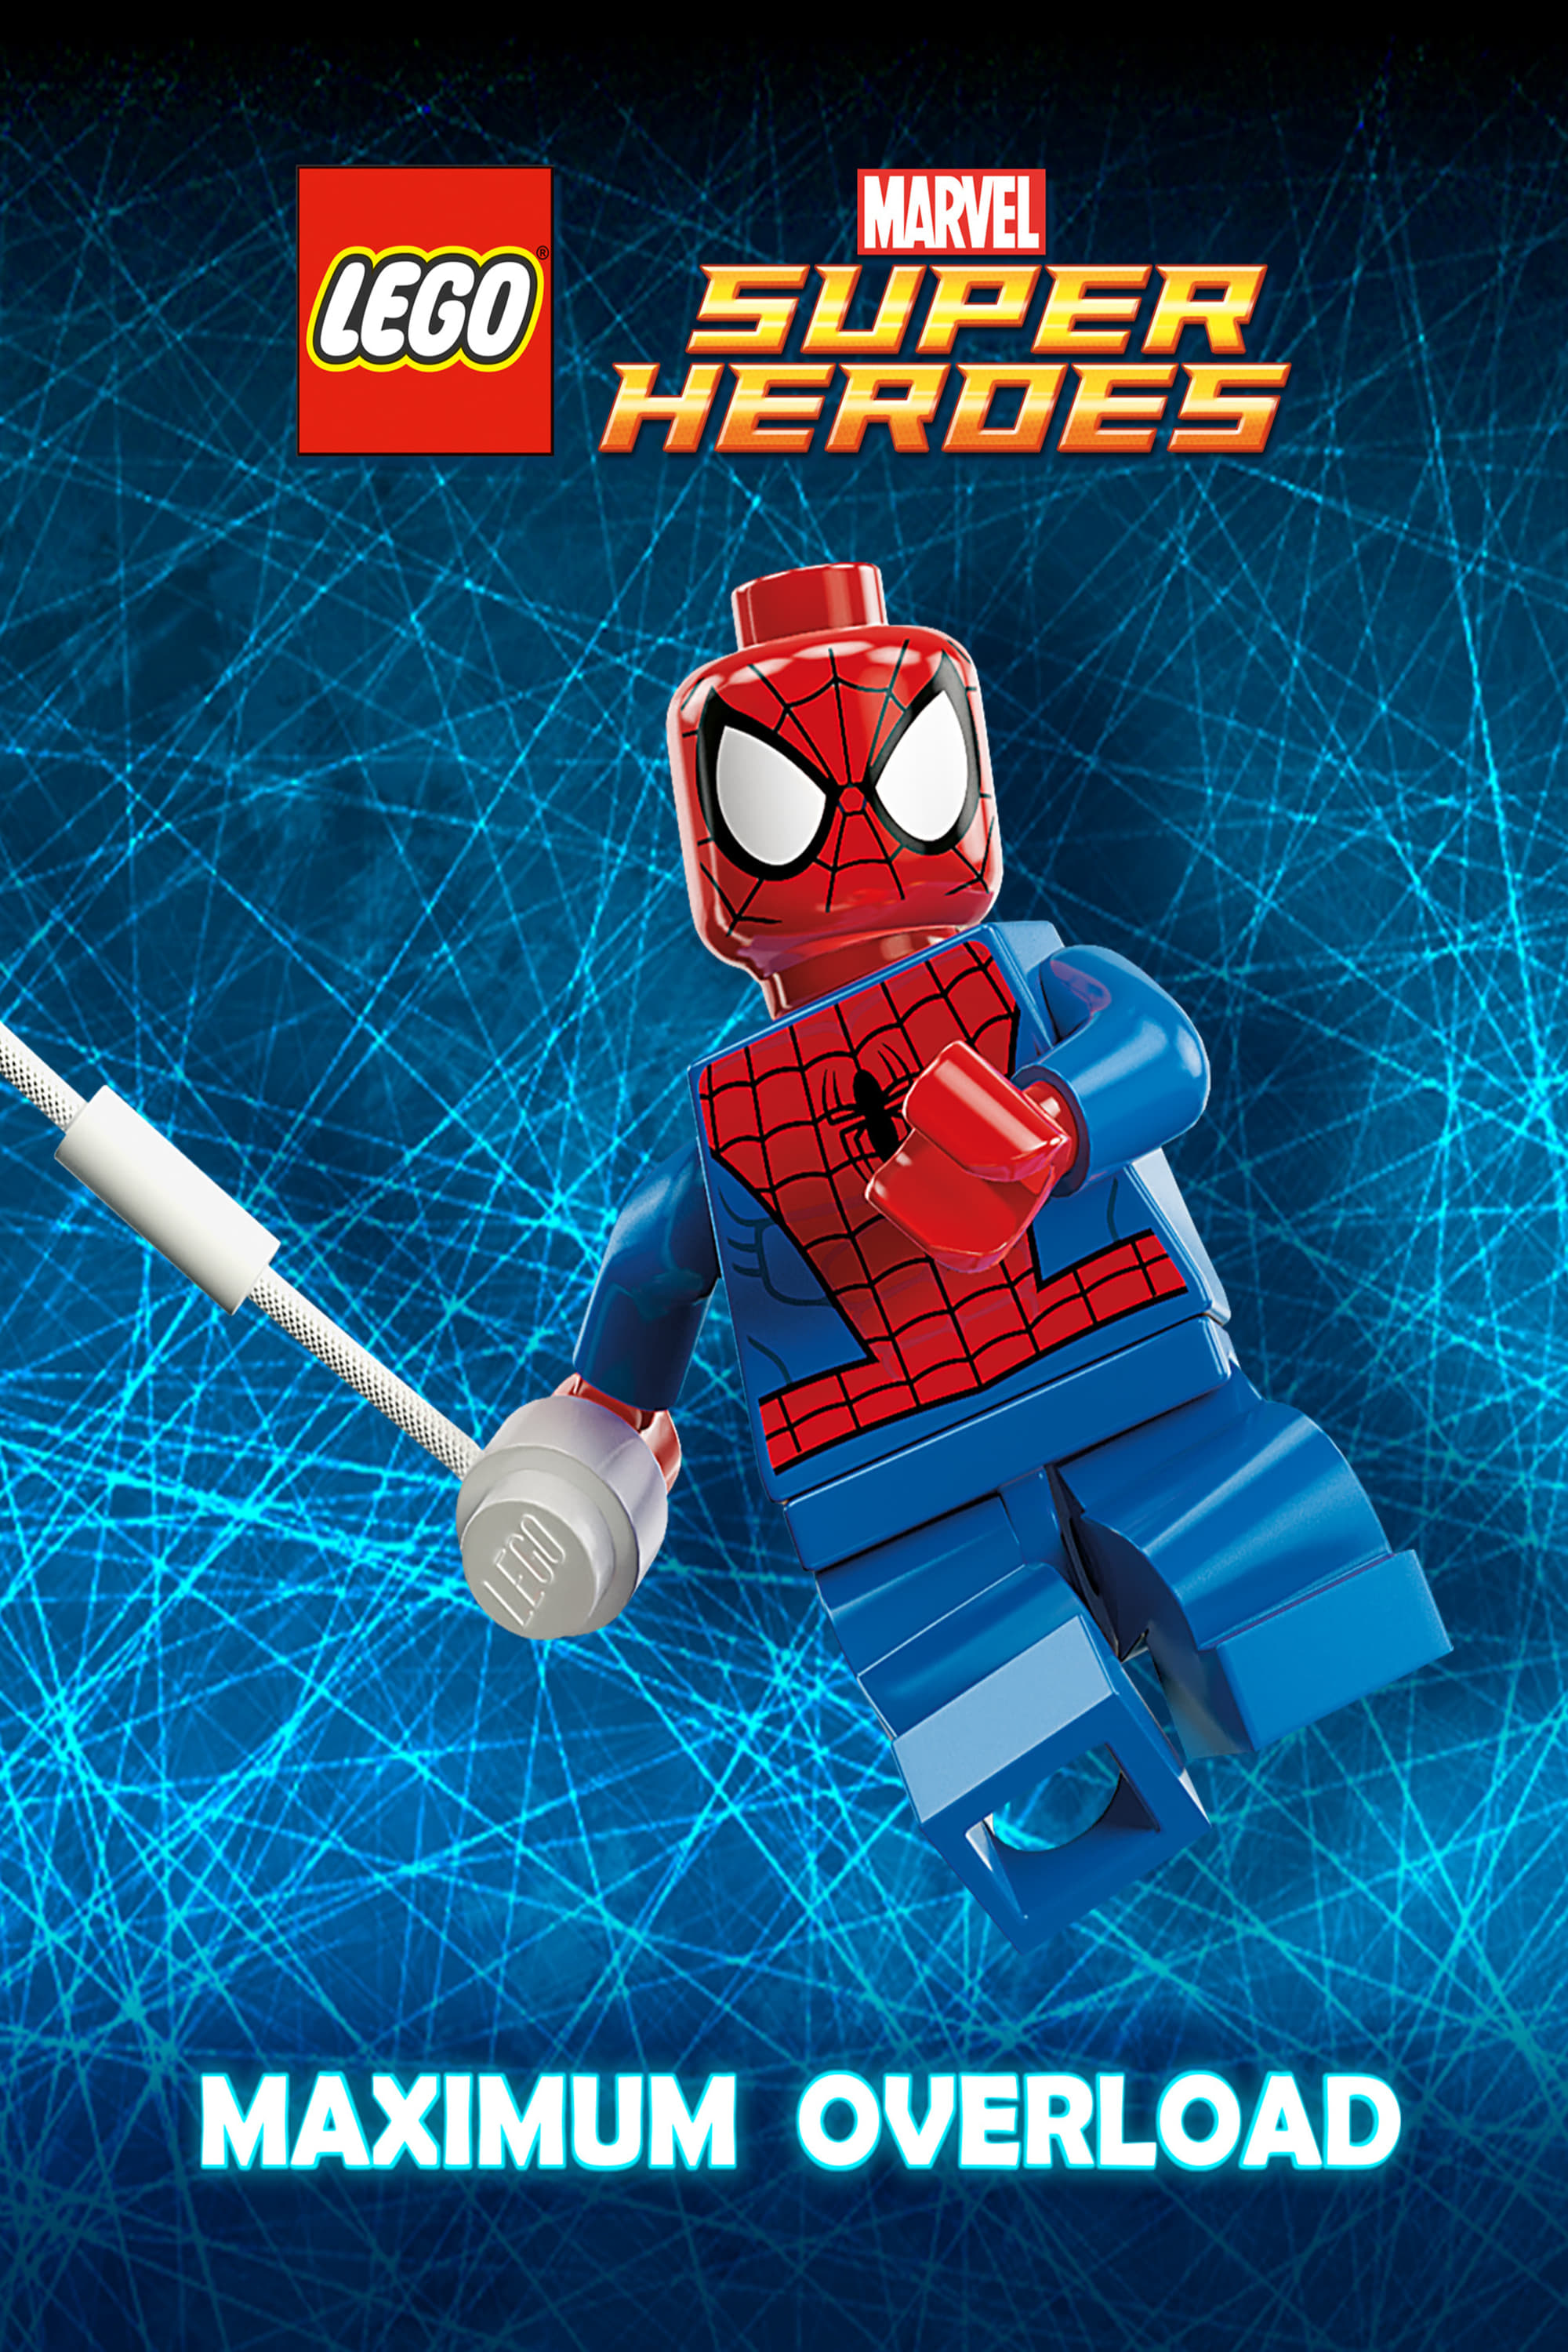 Lego Marvel Super Heroes: Maximum Overload!